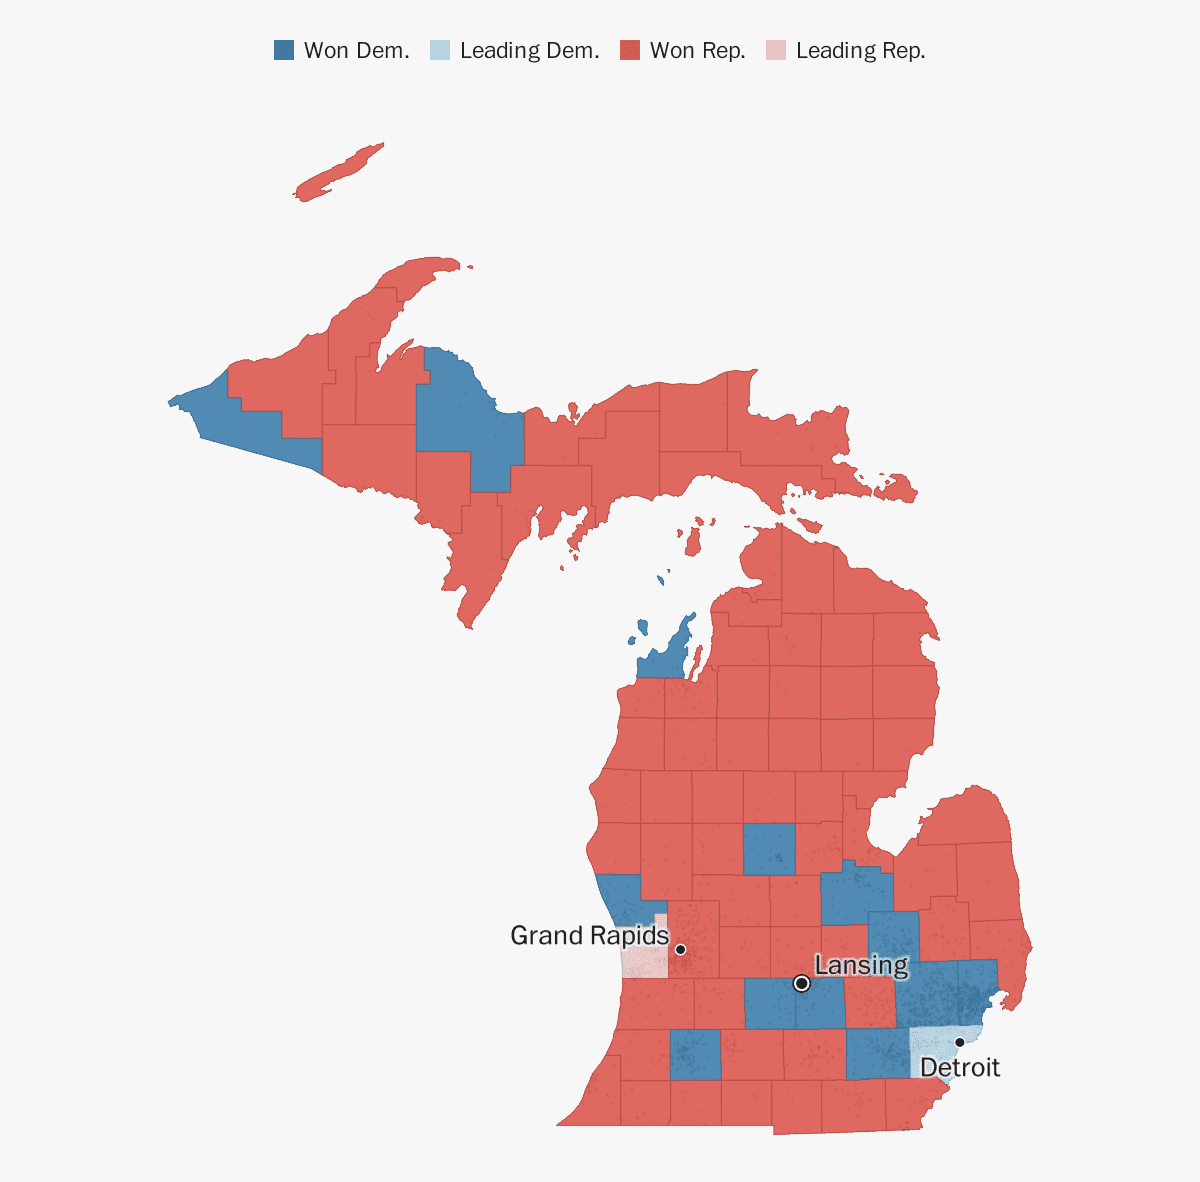 Michigan election results 2018 - The Washington Post